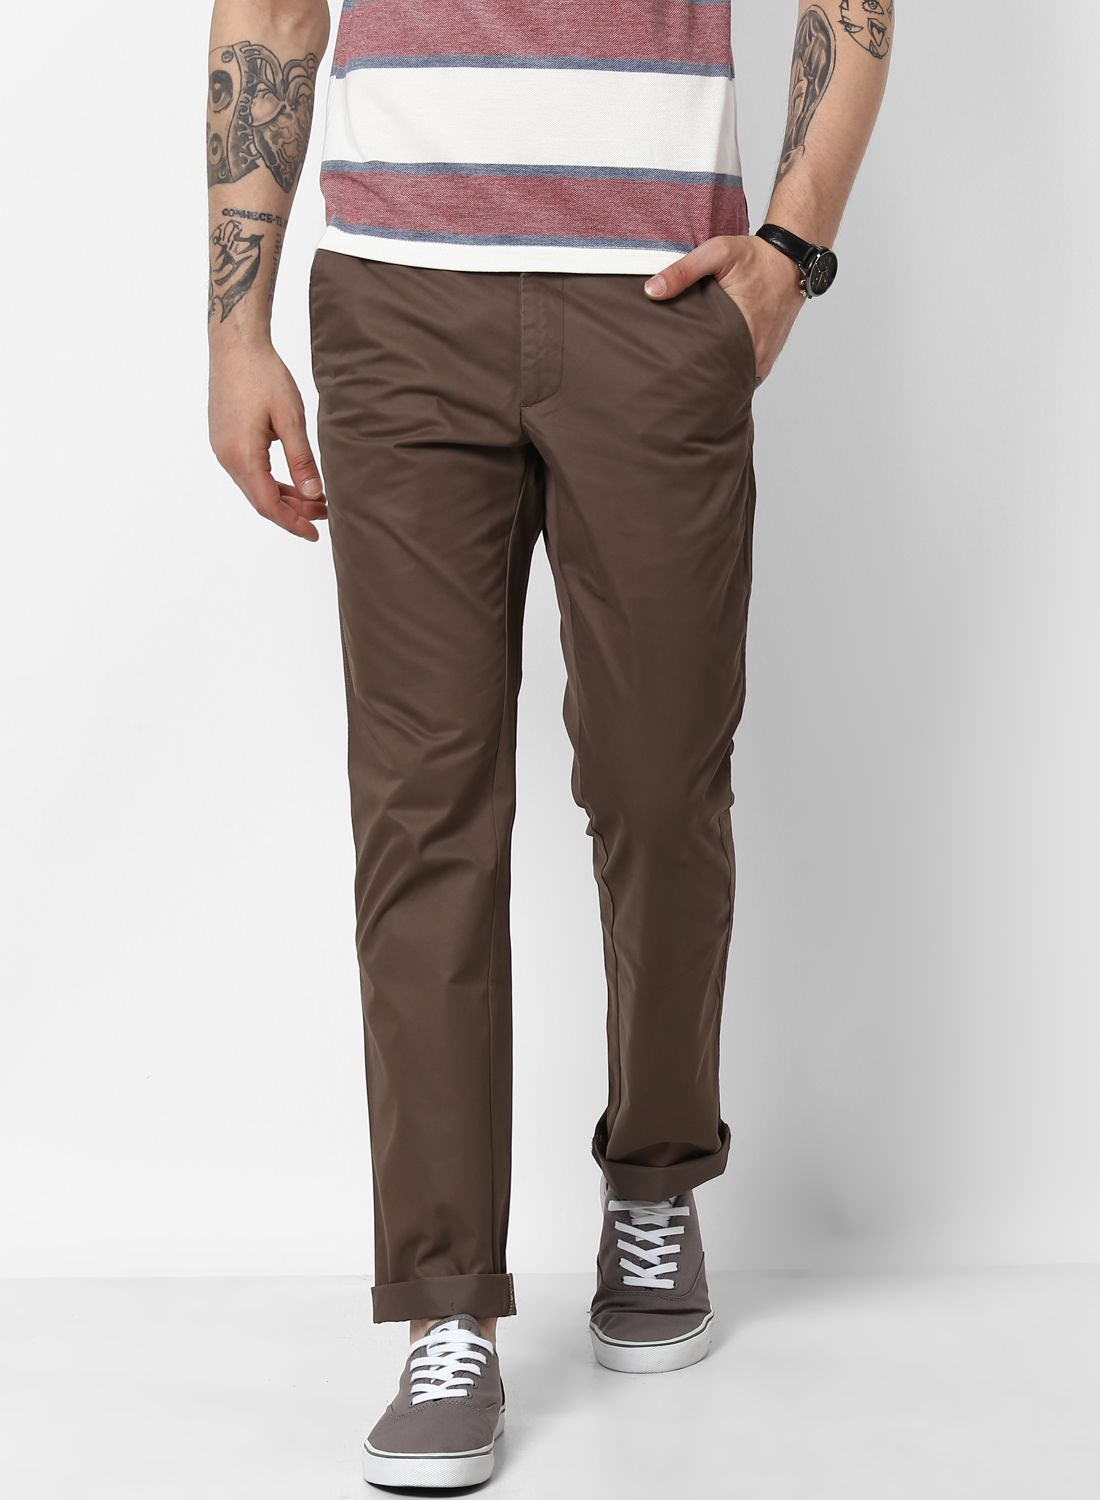 Monte Carlo Grey Regular -Fit Flat Trousers